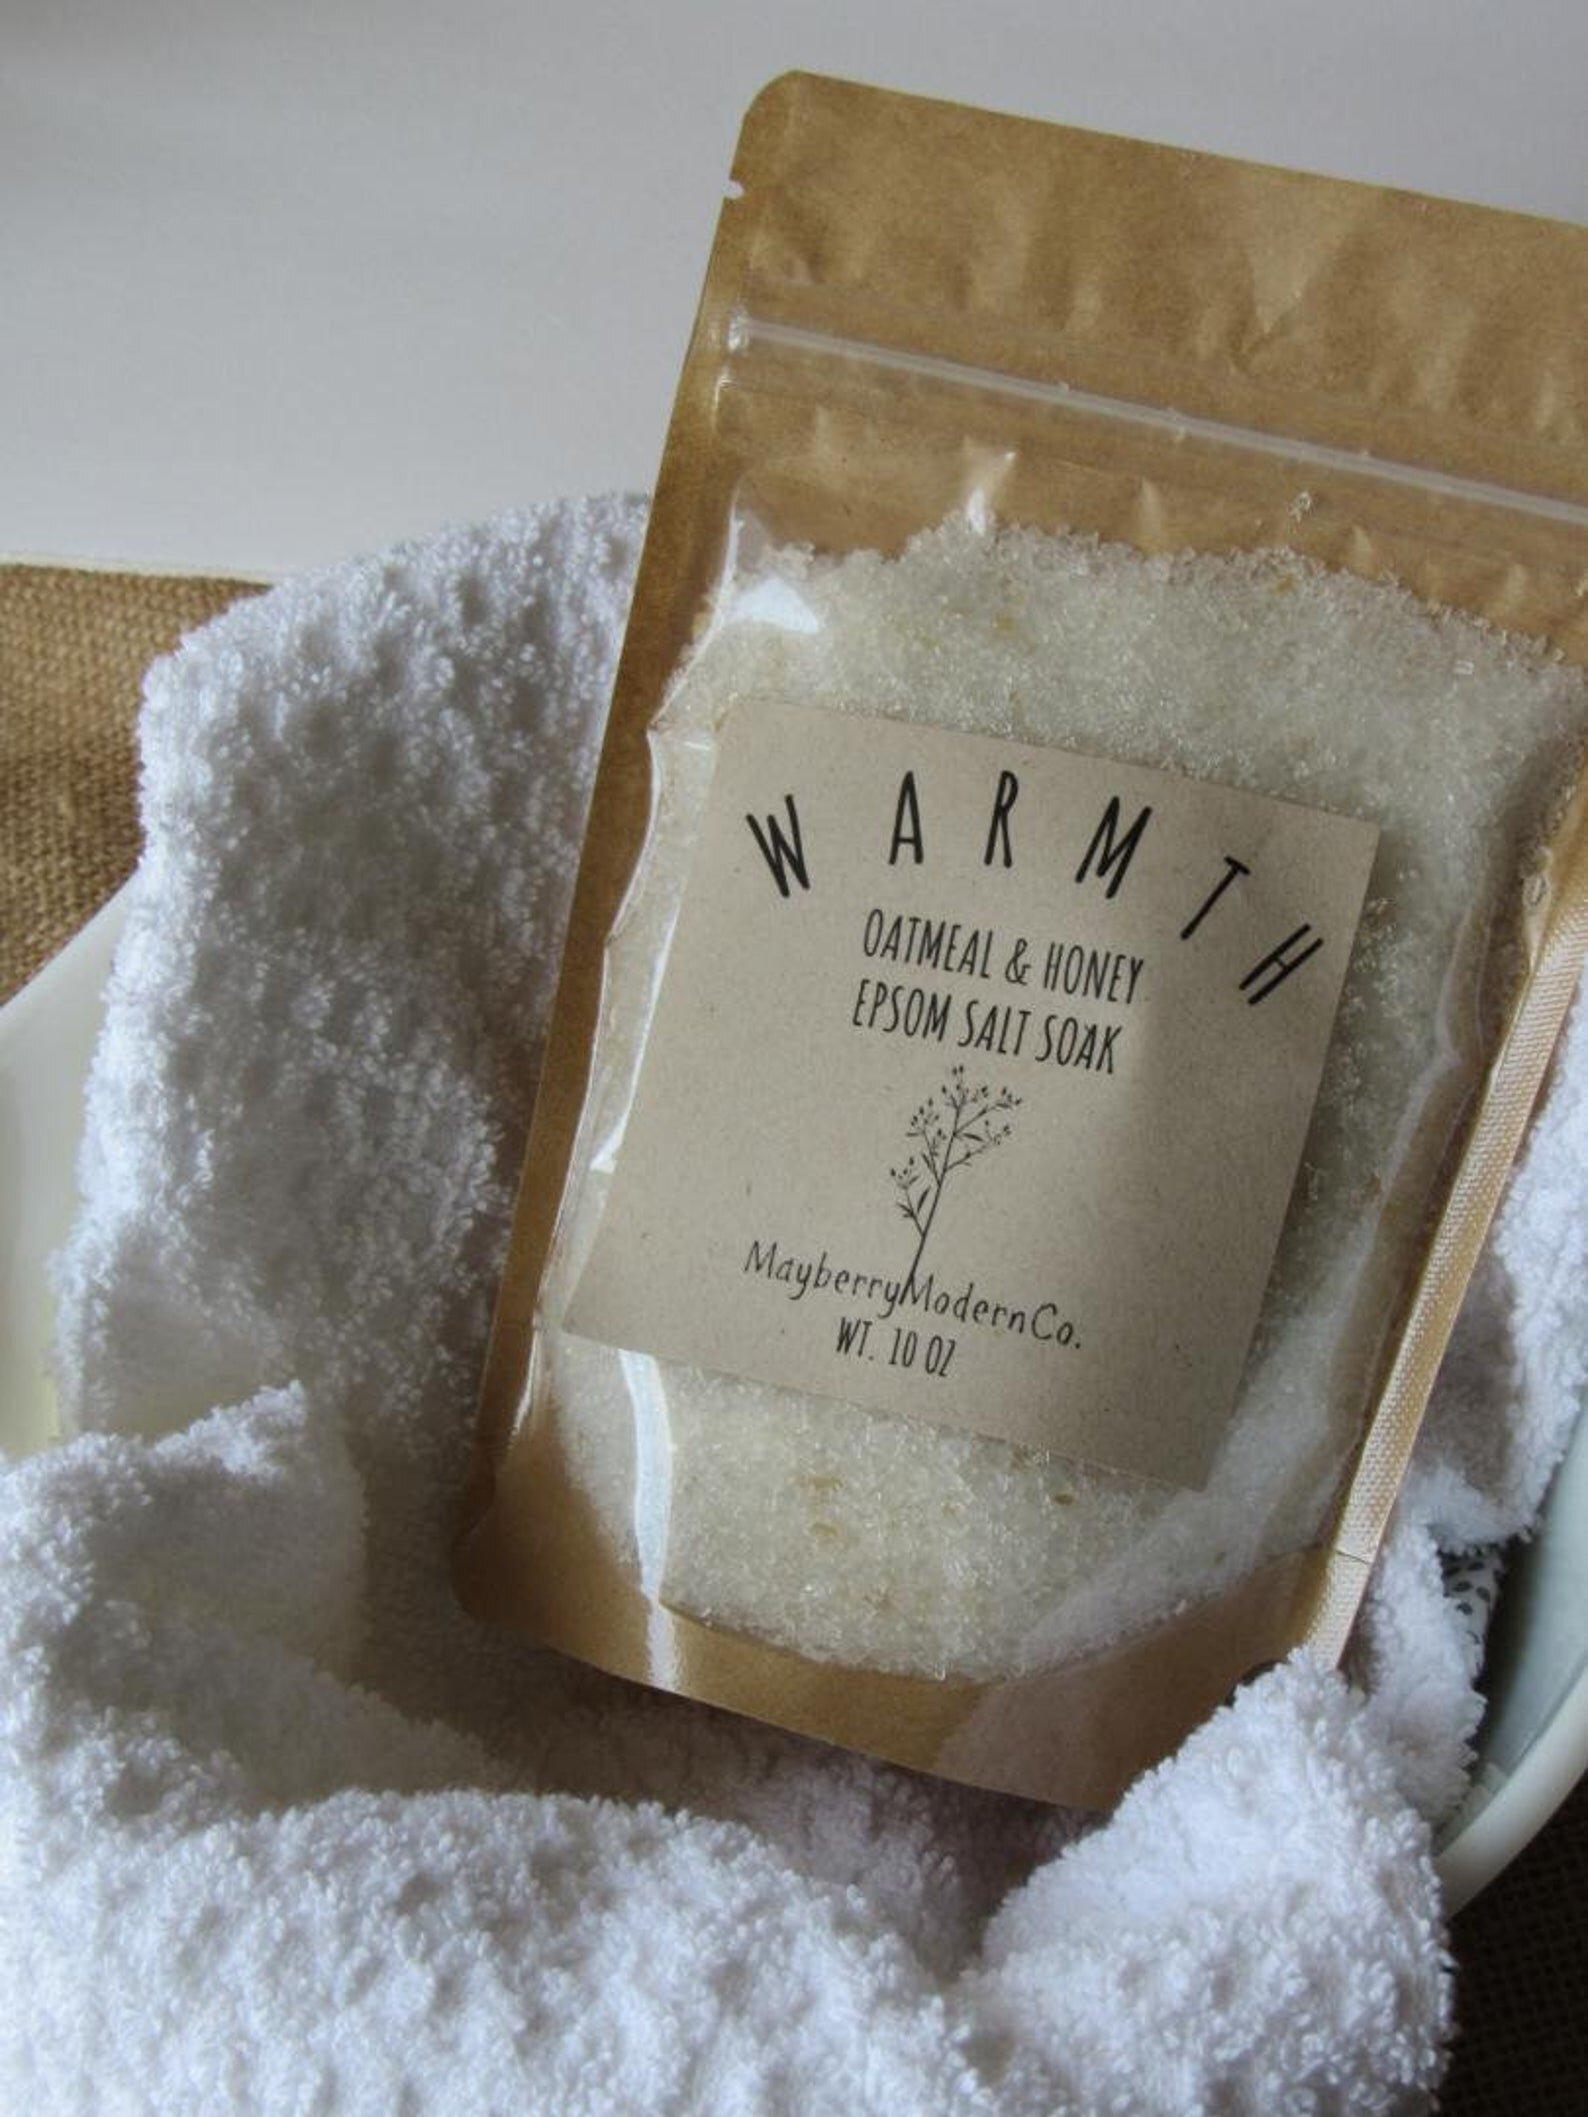 This week's product in the My Be Better Box. Oatmeal & Honey Epsom Salt Soak from Mayberry Modern Co.